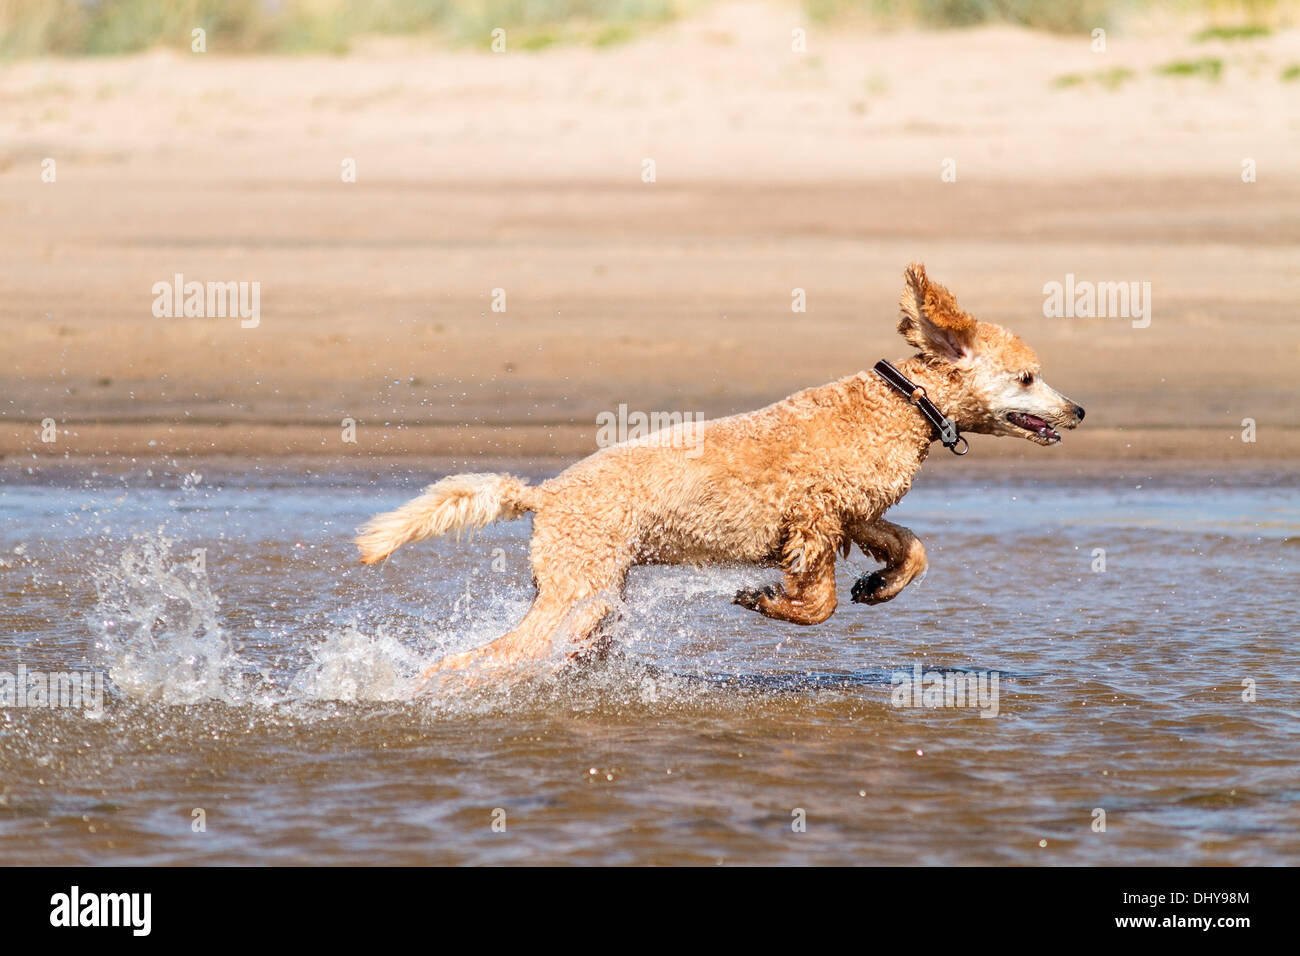 A poodle running on the sea and water splashing - Stock Image